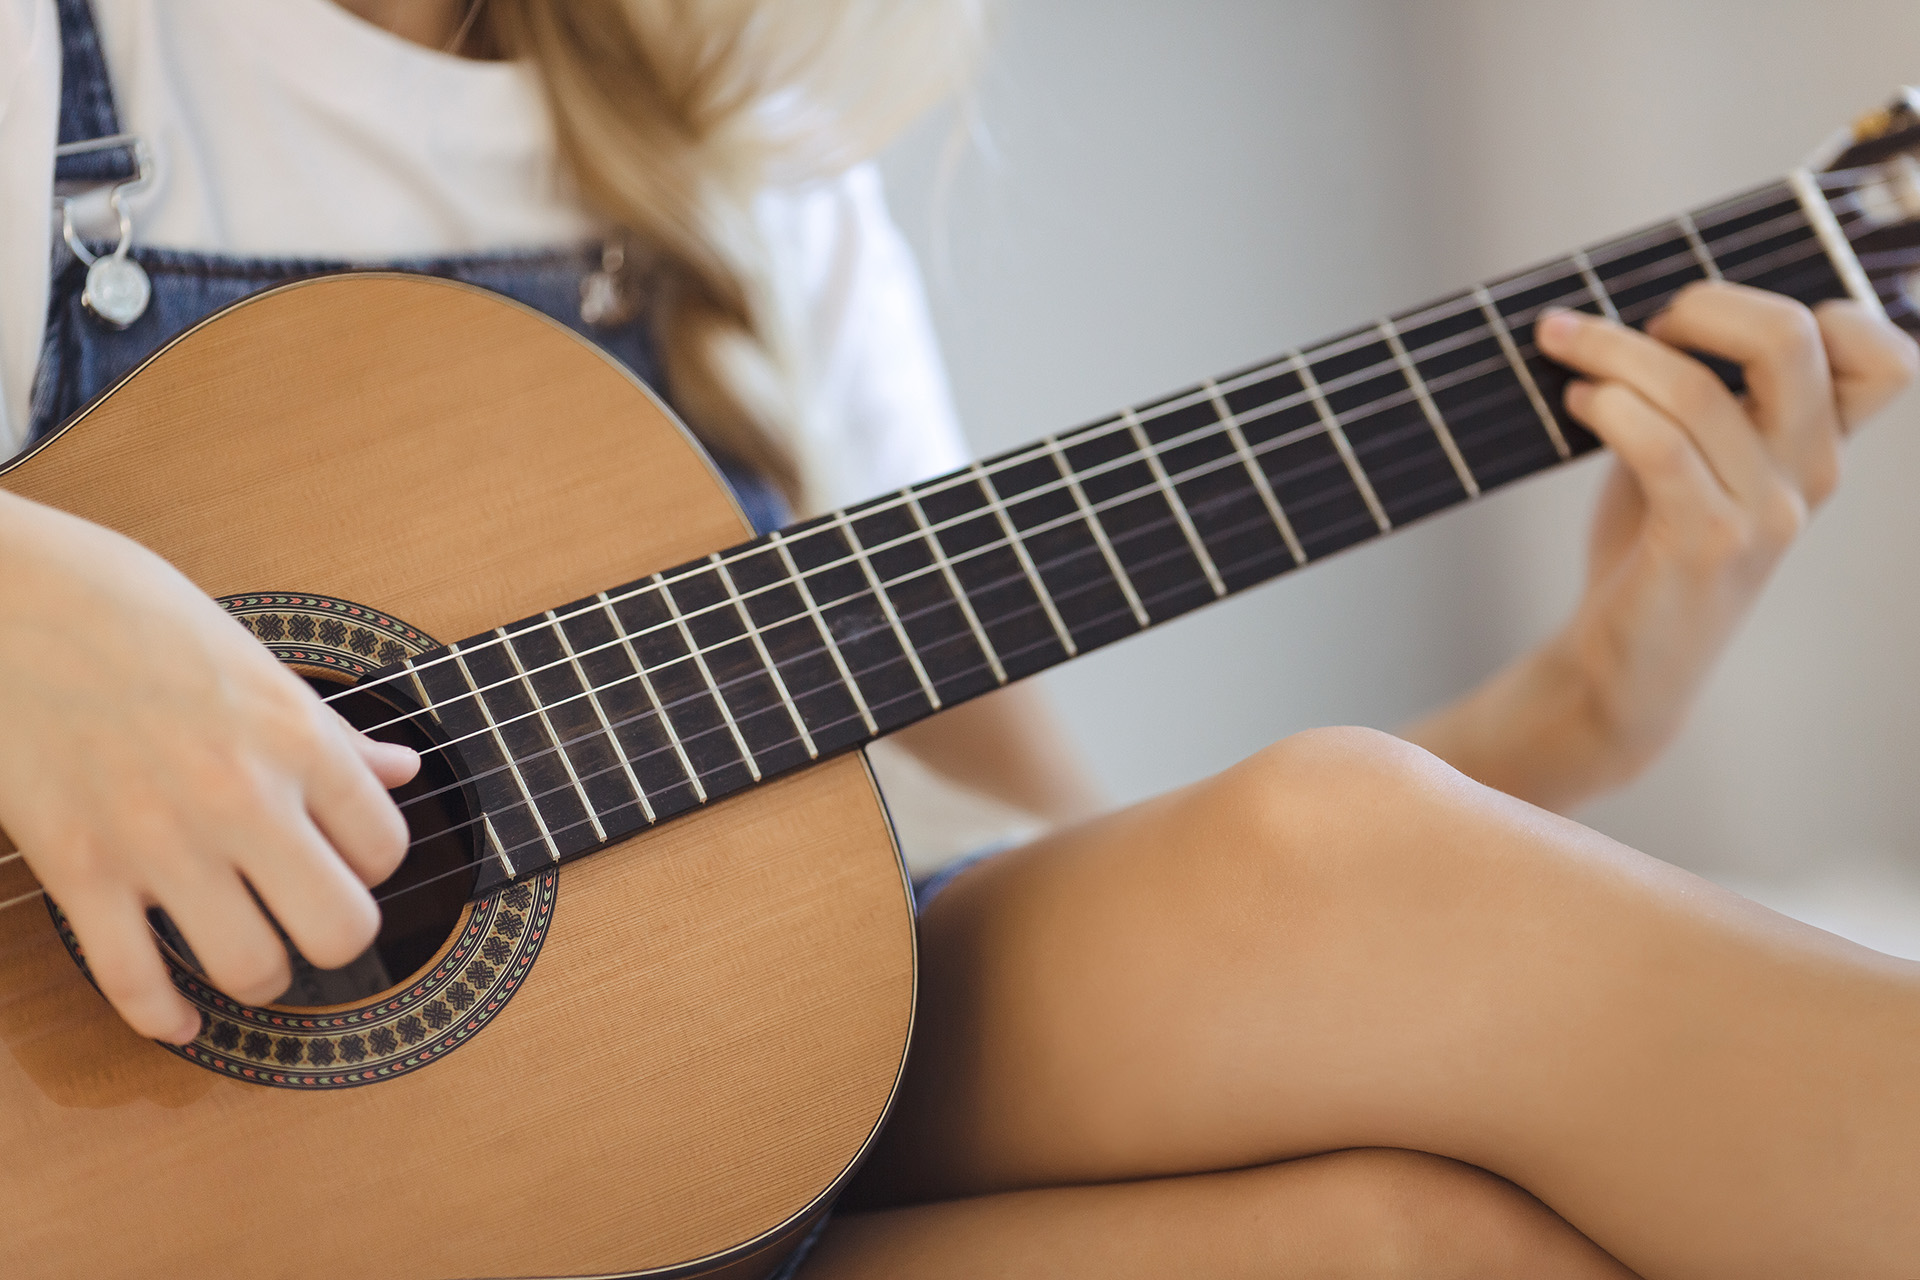 Close up of a woman playing guitar at home. Girls's hands playing acoustic guitar indoors.